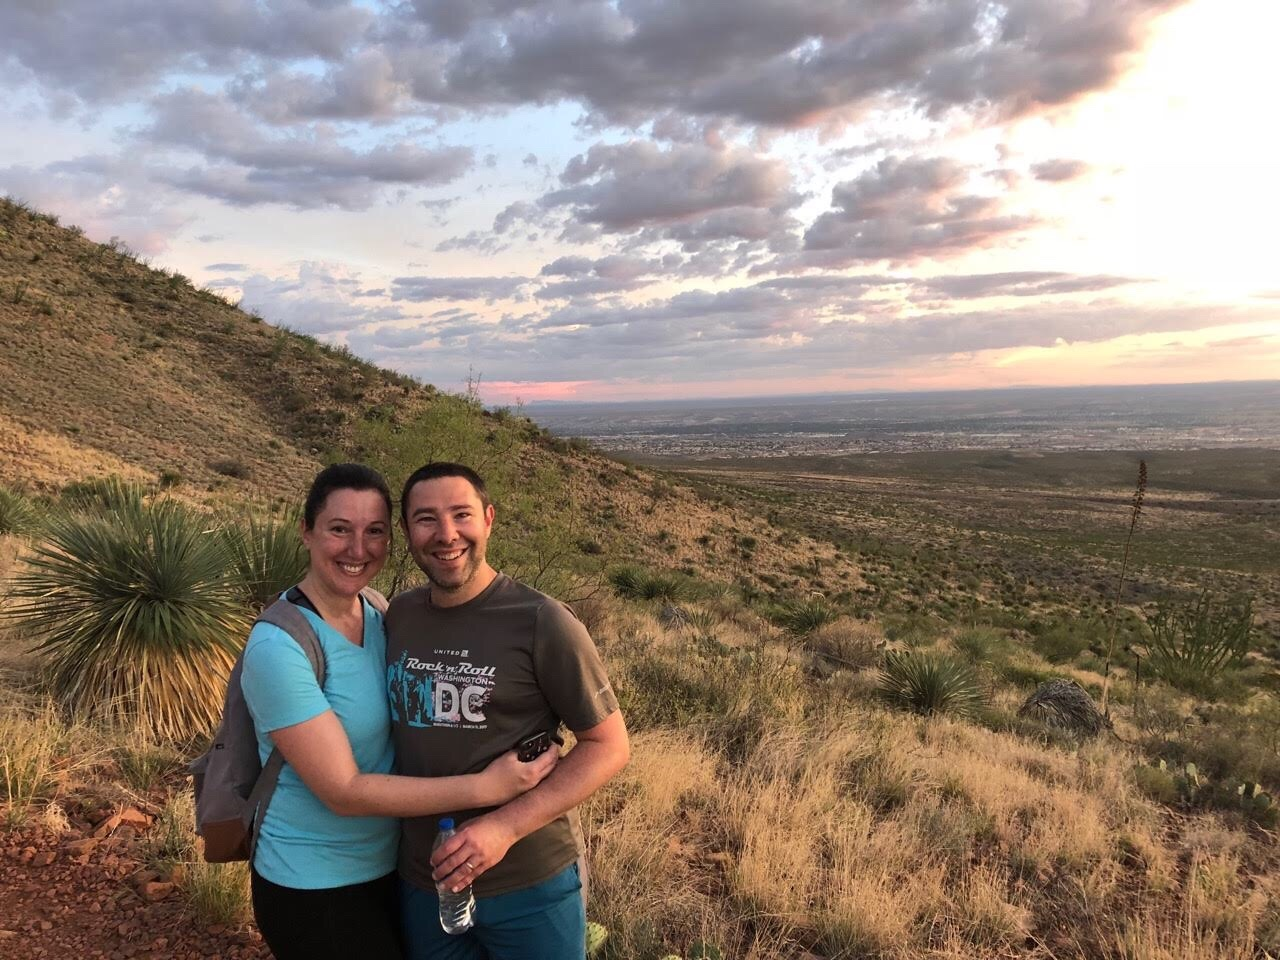 Paul and Marnay at Franklin Mountain State Park in El Paso, Texas